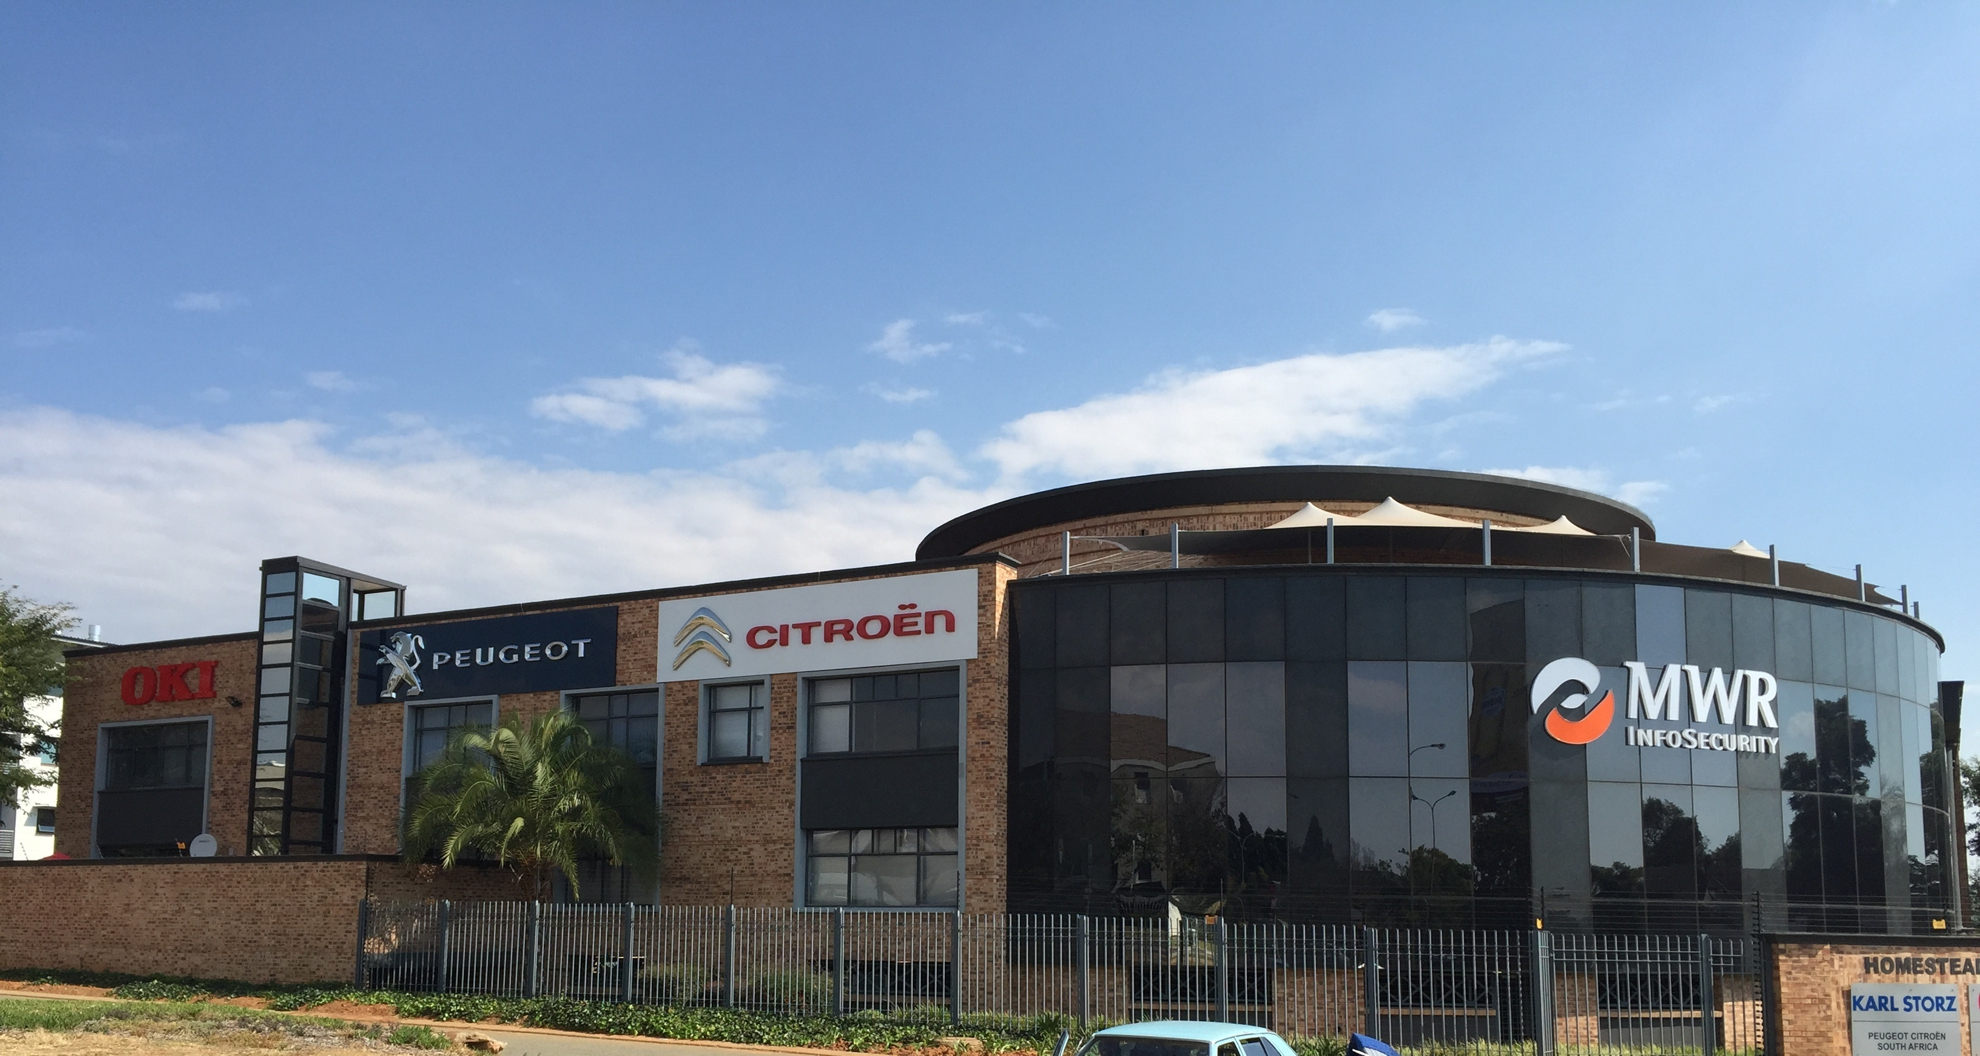 peugeot citroën south africa head office on the move